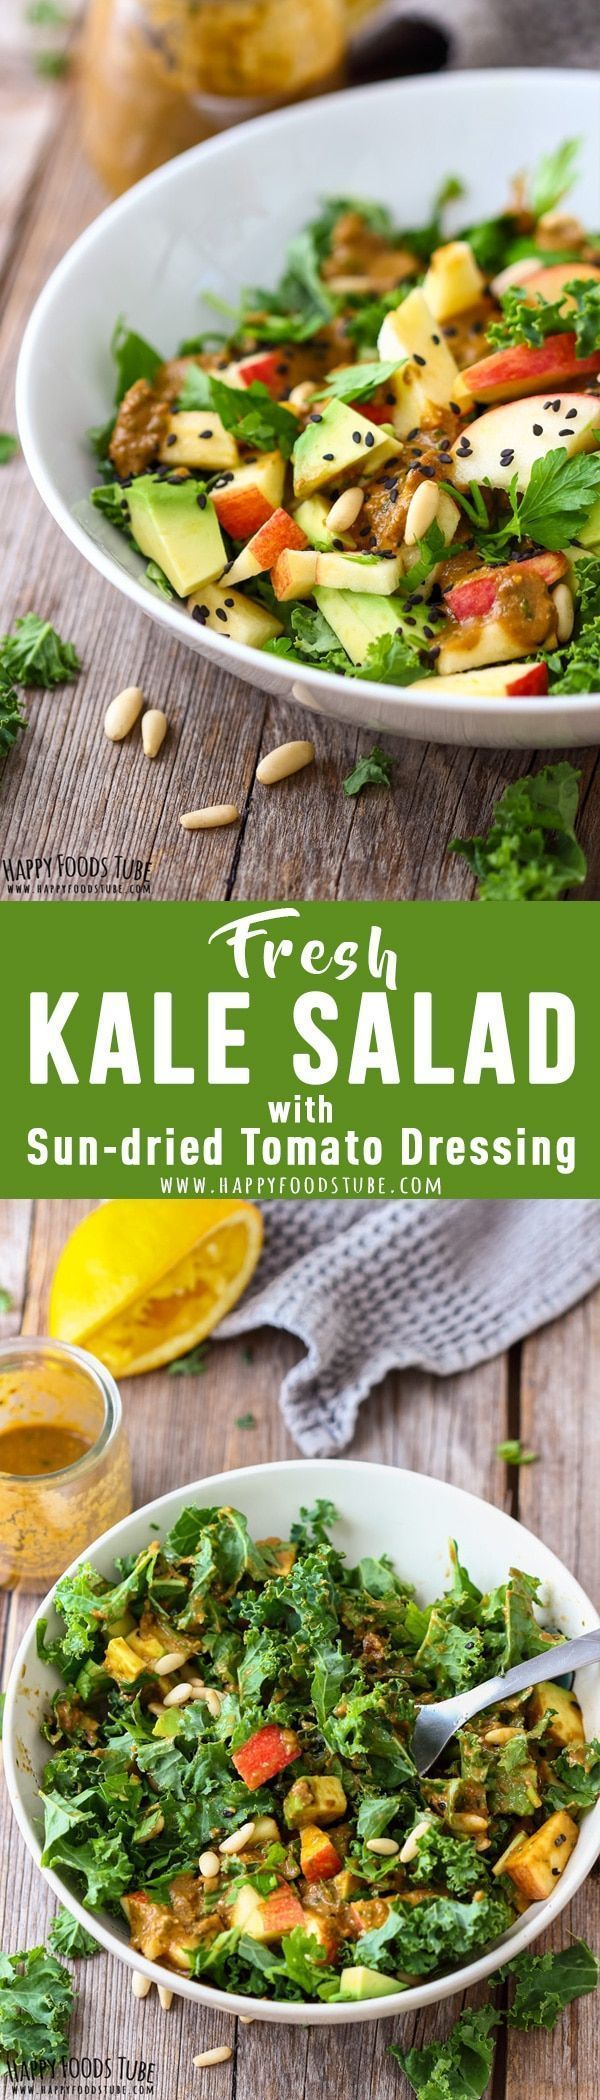 Fresh kale salad with sun-dried tomato dressing is healthy and delicious at the same time.